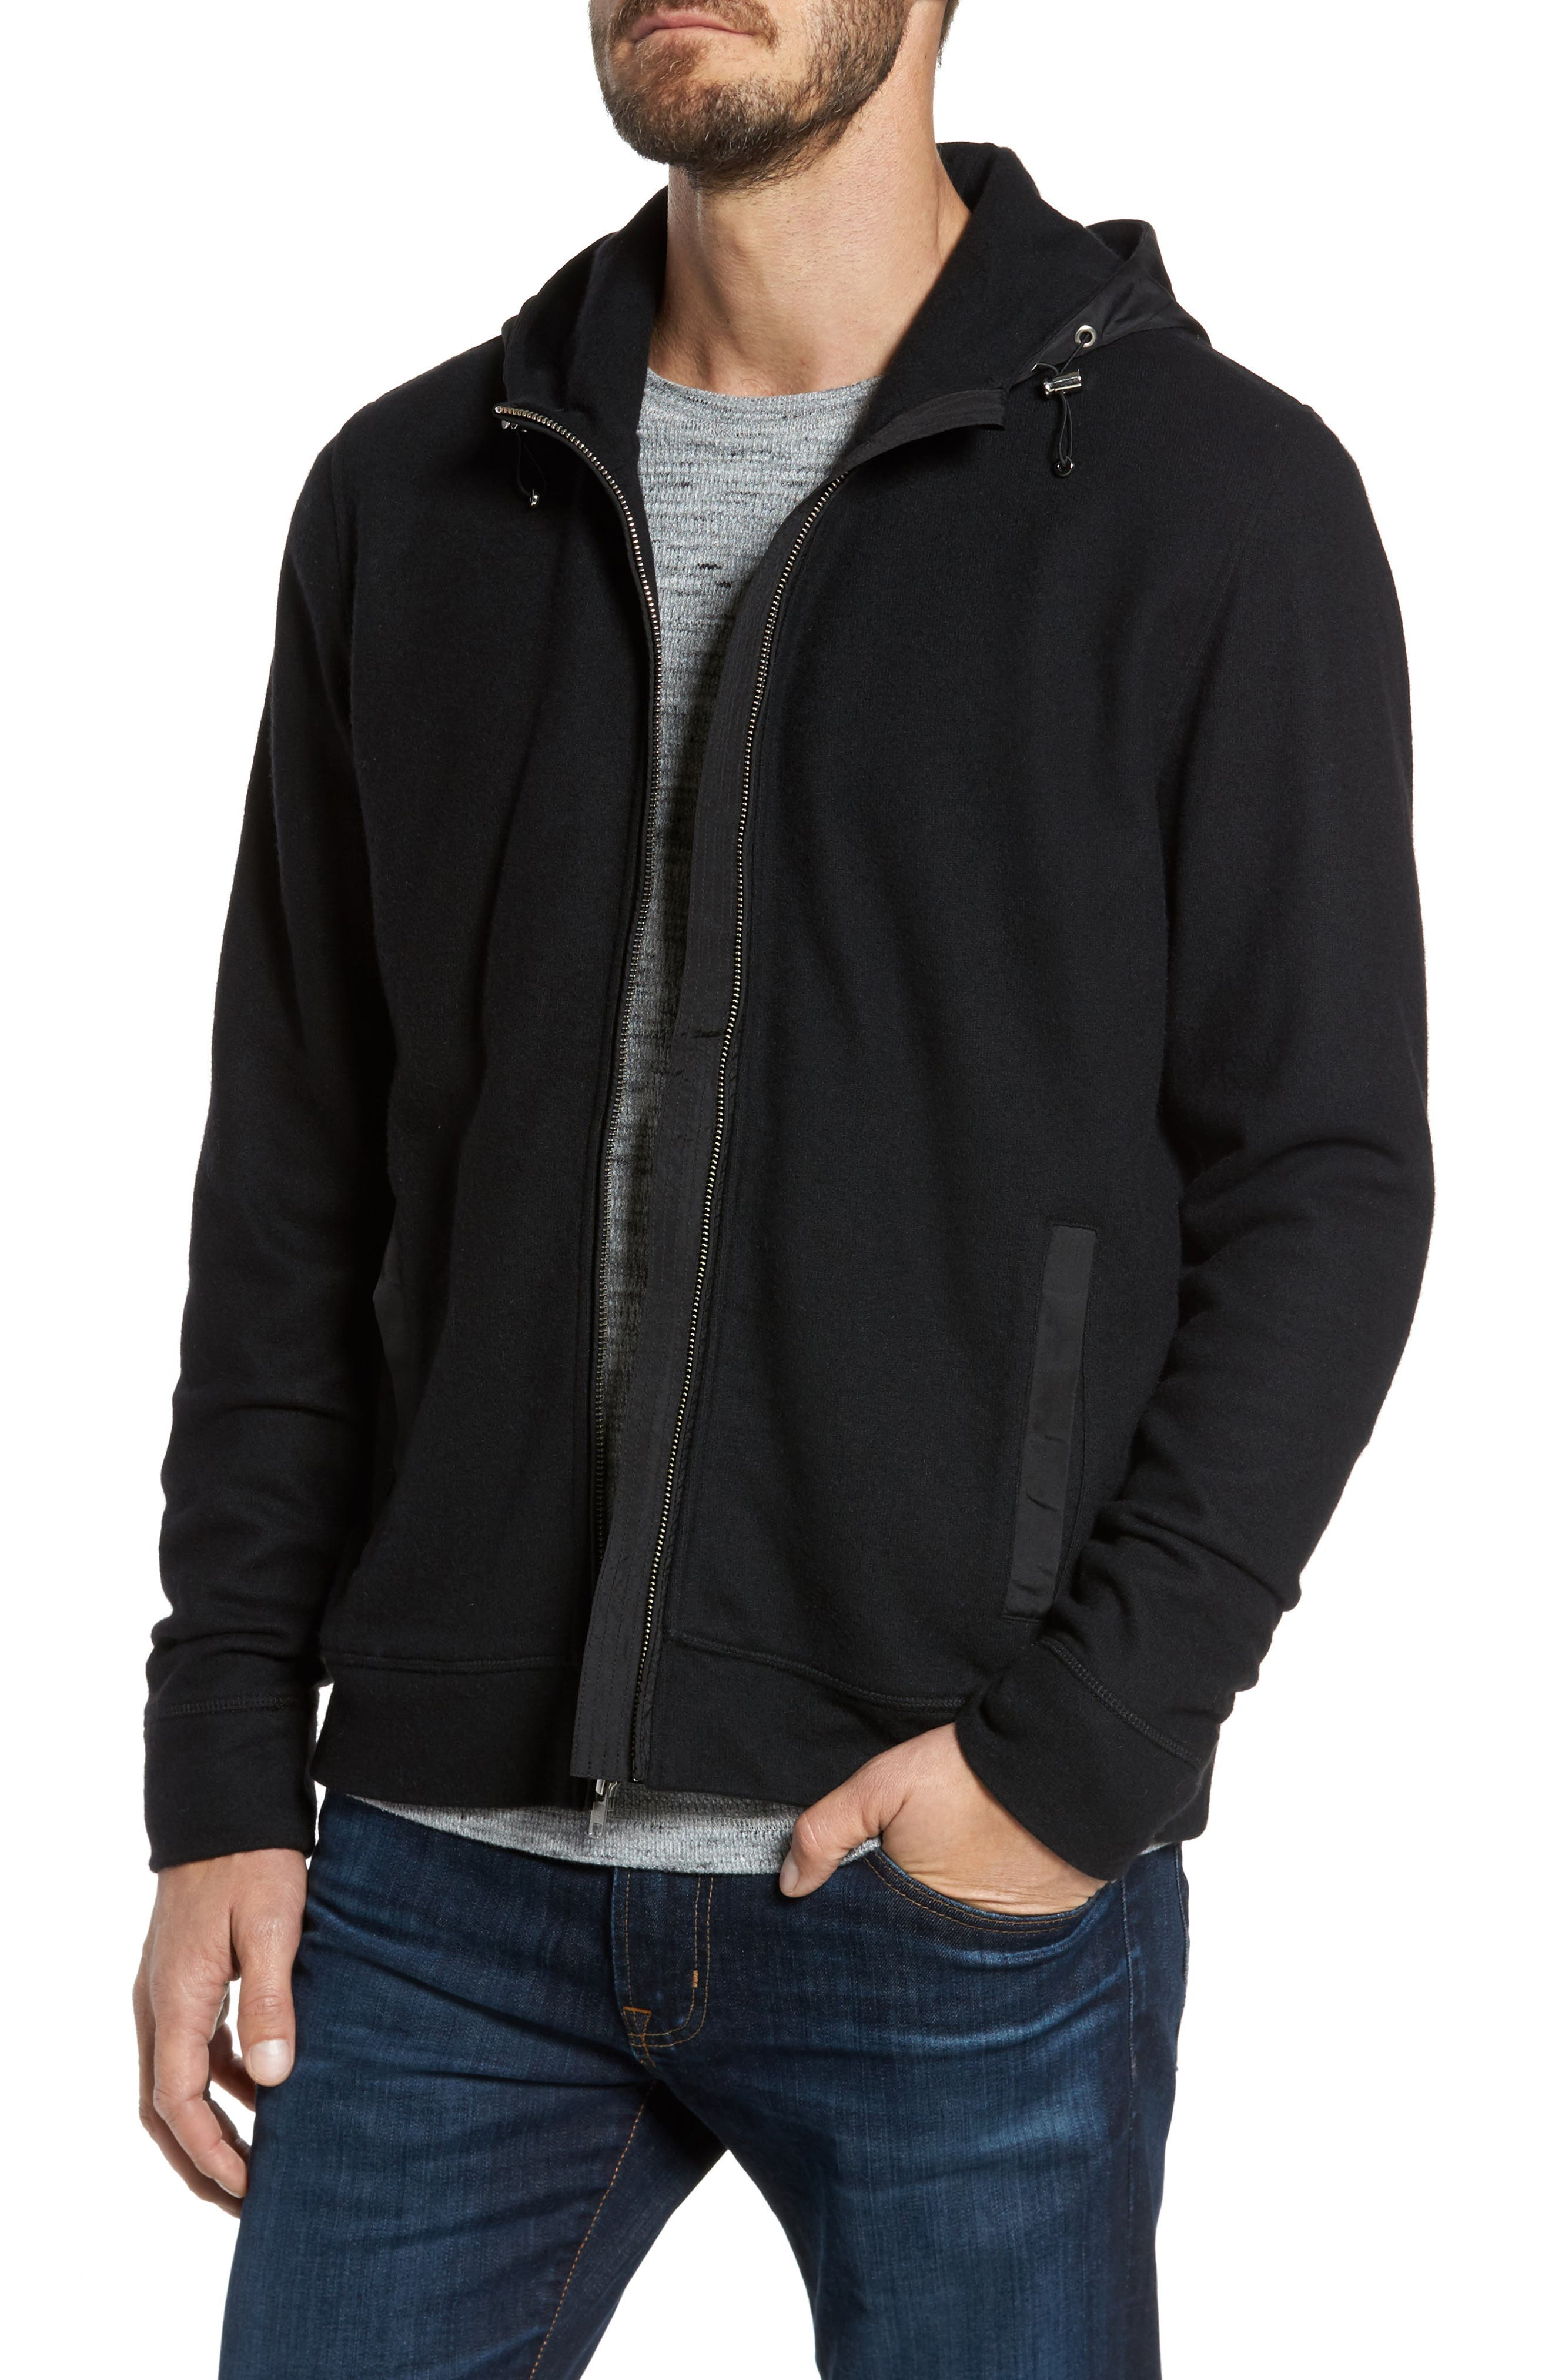 Main Image - Nordstrom Men's Shop Wool Blend Hooded Cardigan